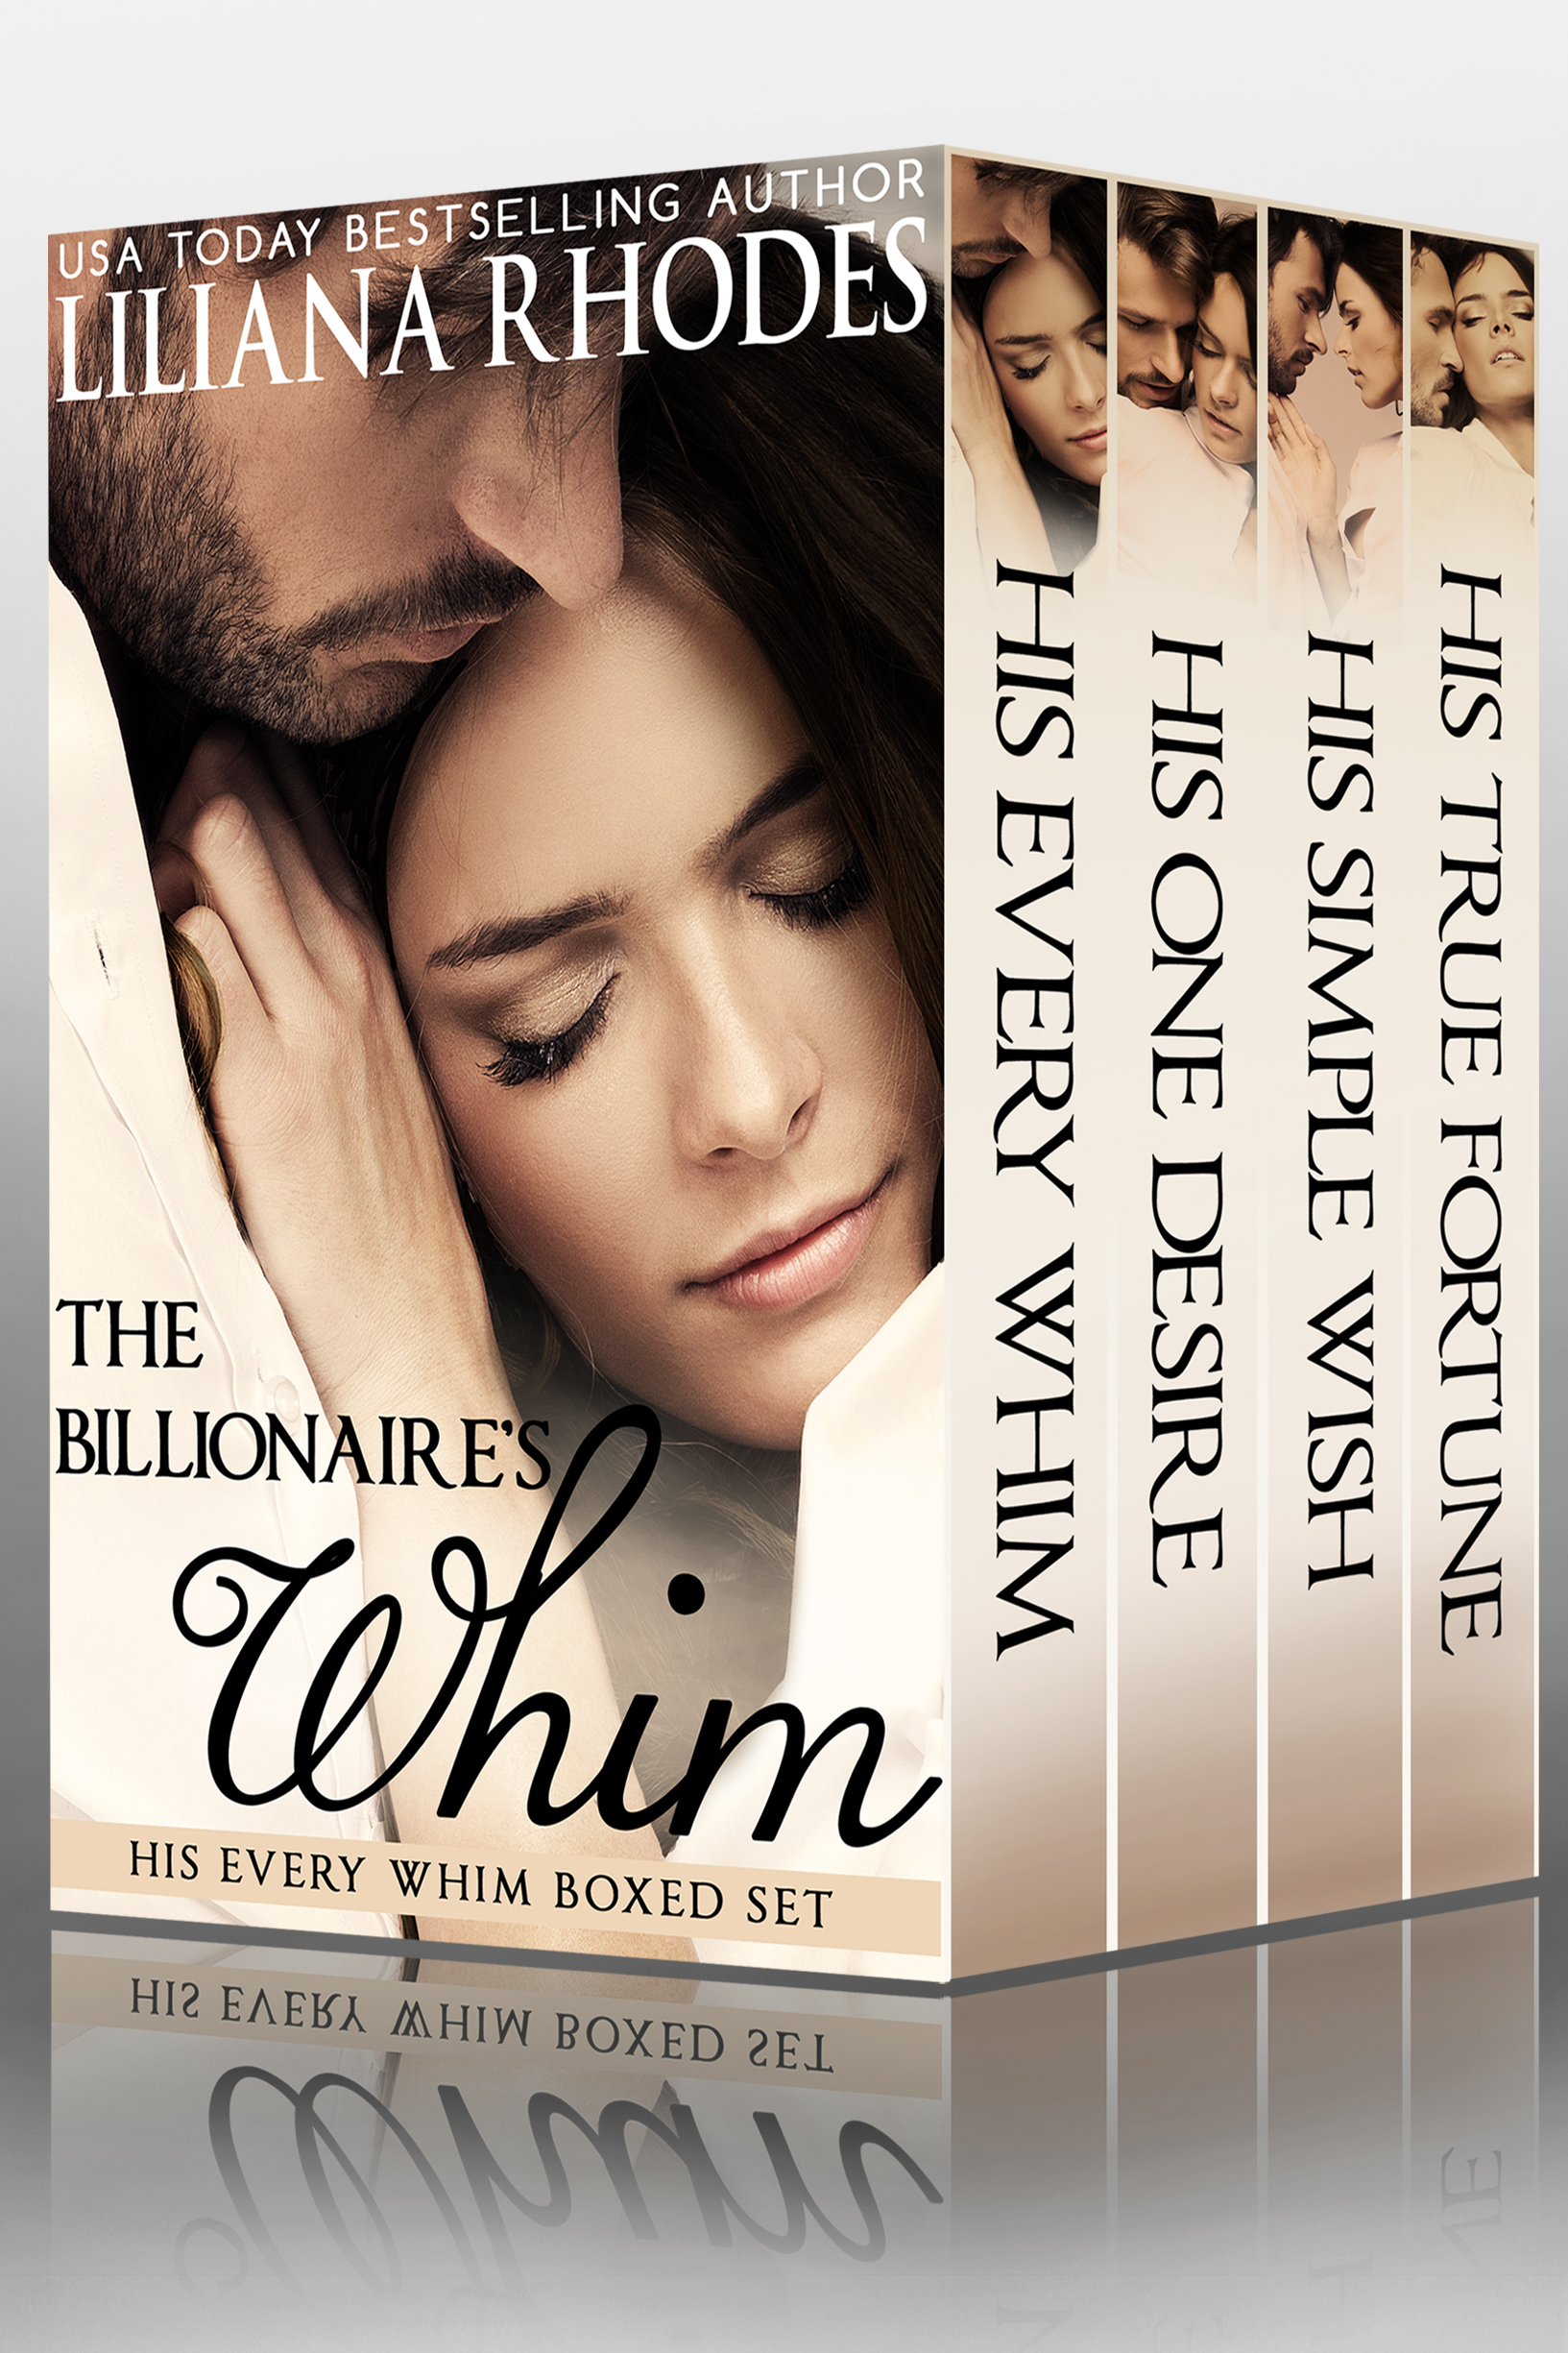 The Billionaire's Whim, His Every Whim boxed set by Liliana Rhodes